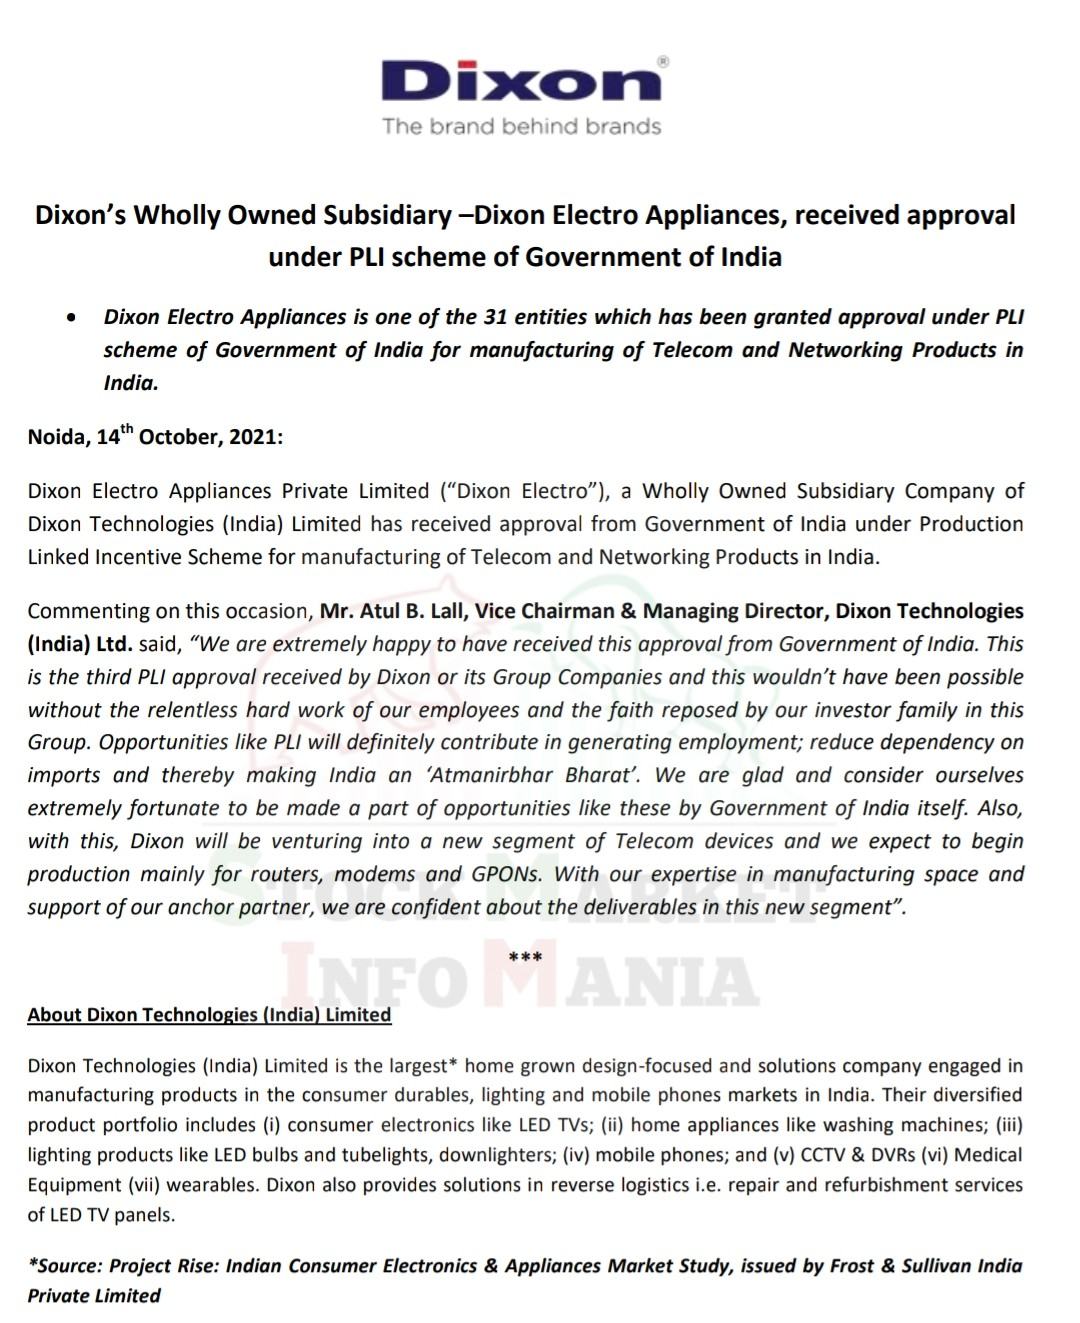 Dixon Electro Appliances, received approval under PLI scheme of Government of India